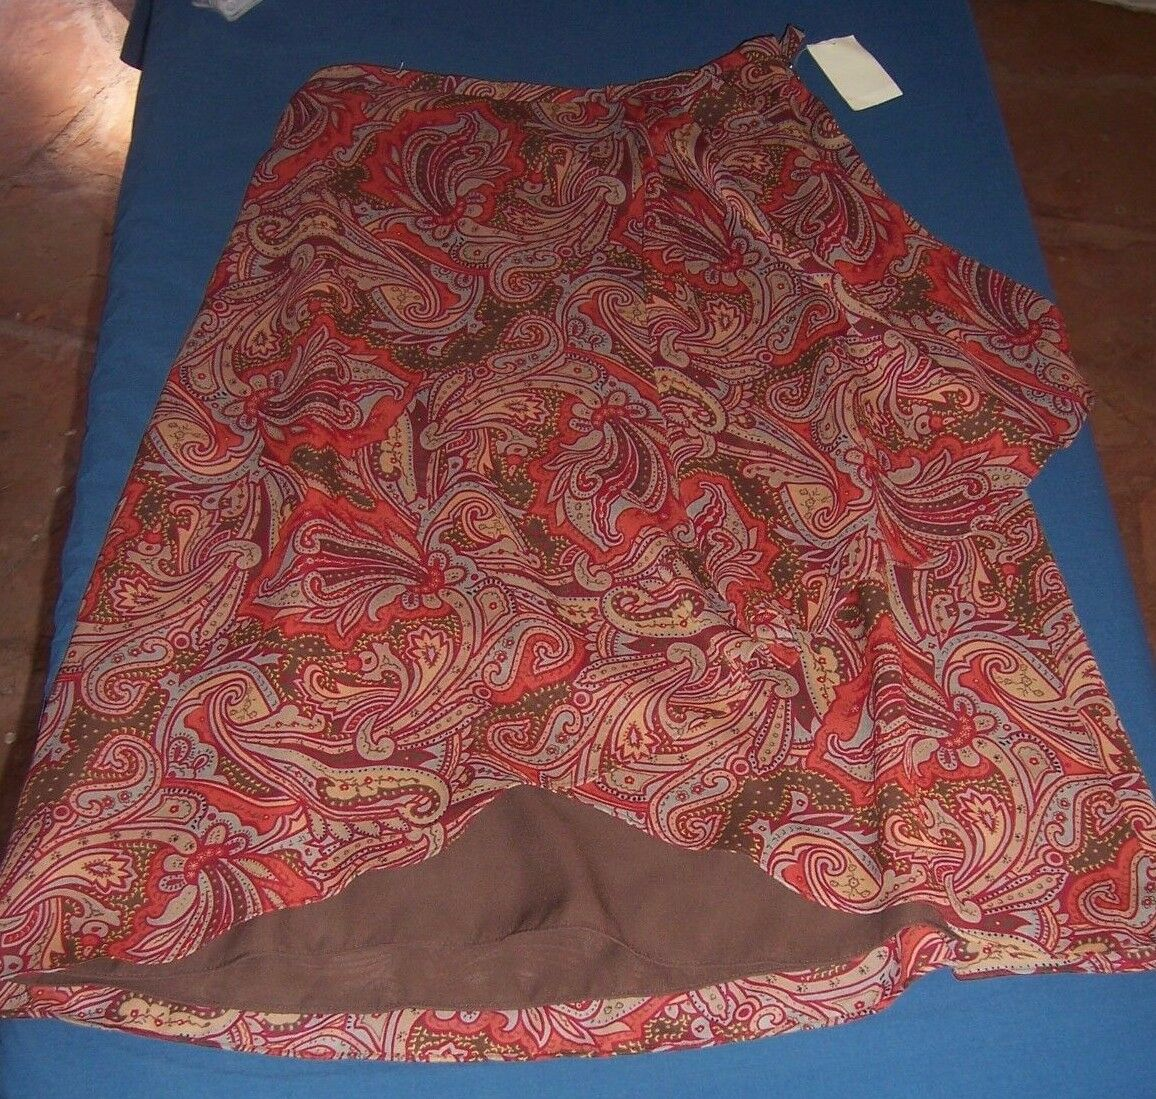 NWT Coldwater Creek Brown Paisley Print polyester MidCalf Skirt Misses Size S